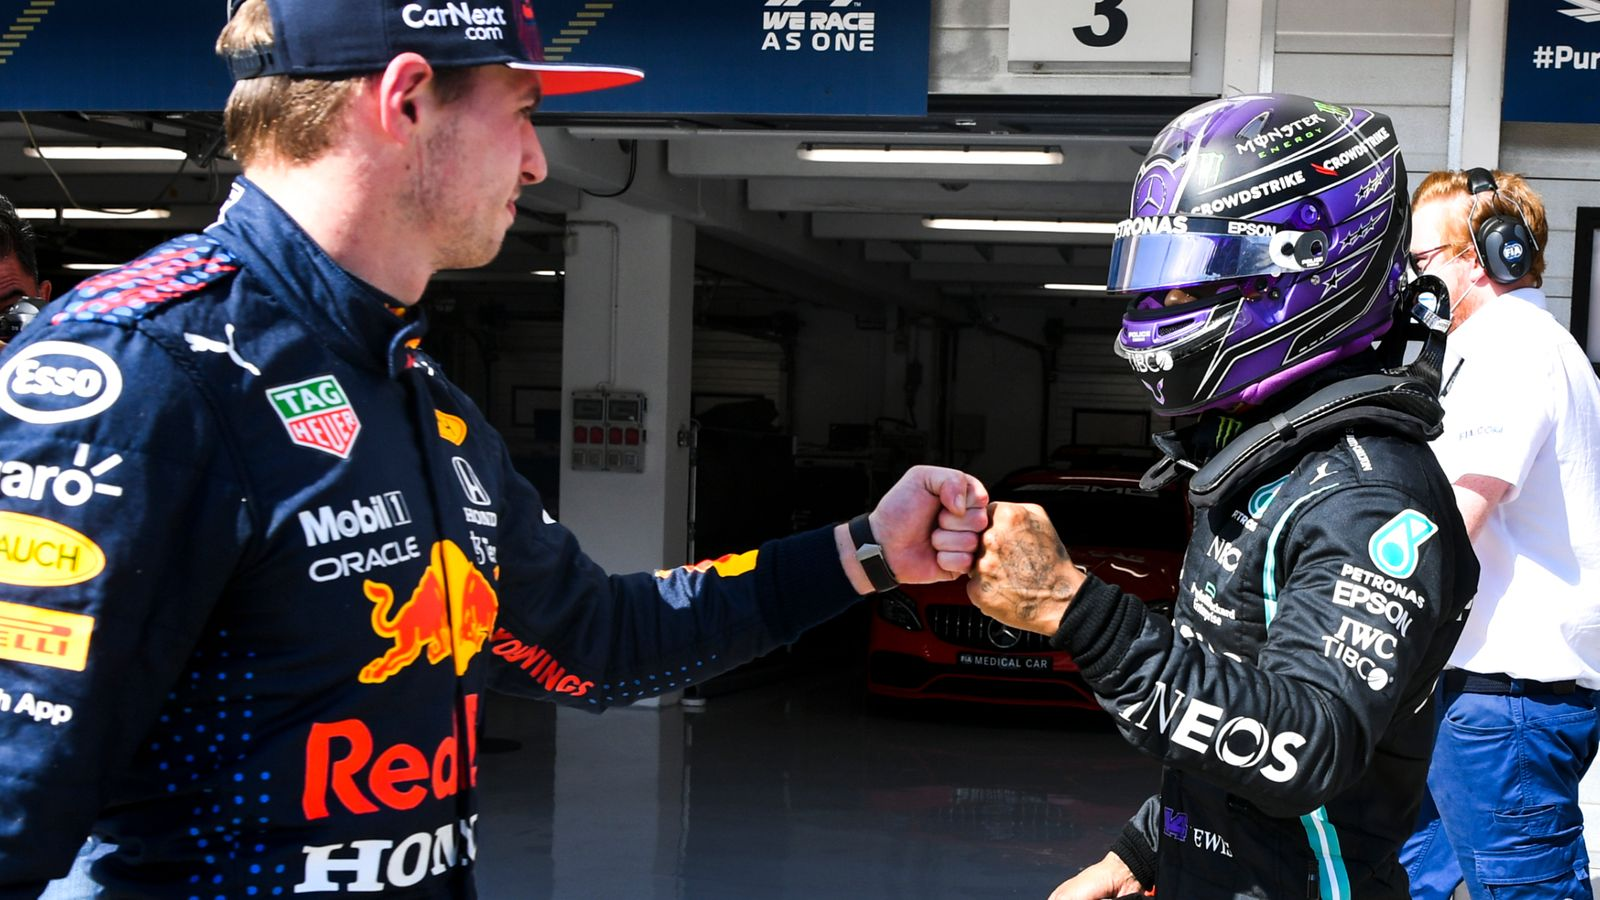 Hungarian GP Qualifying: Lewis Hamilton again on F1 pole with Max Verstappen third on grid